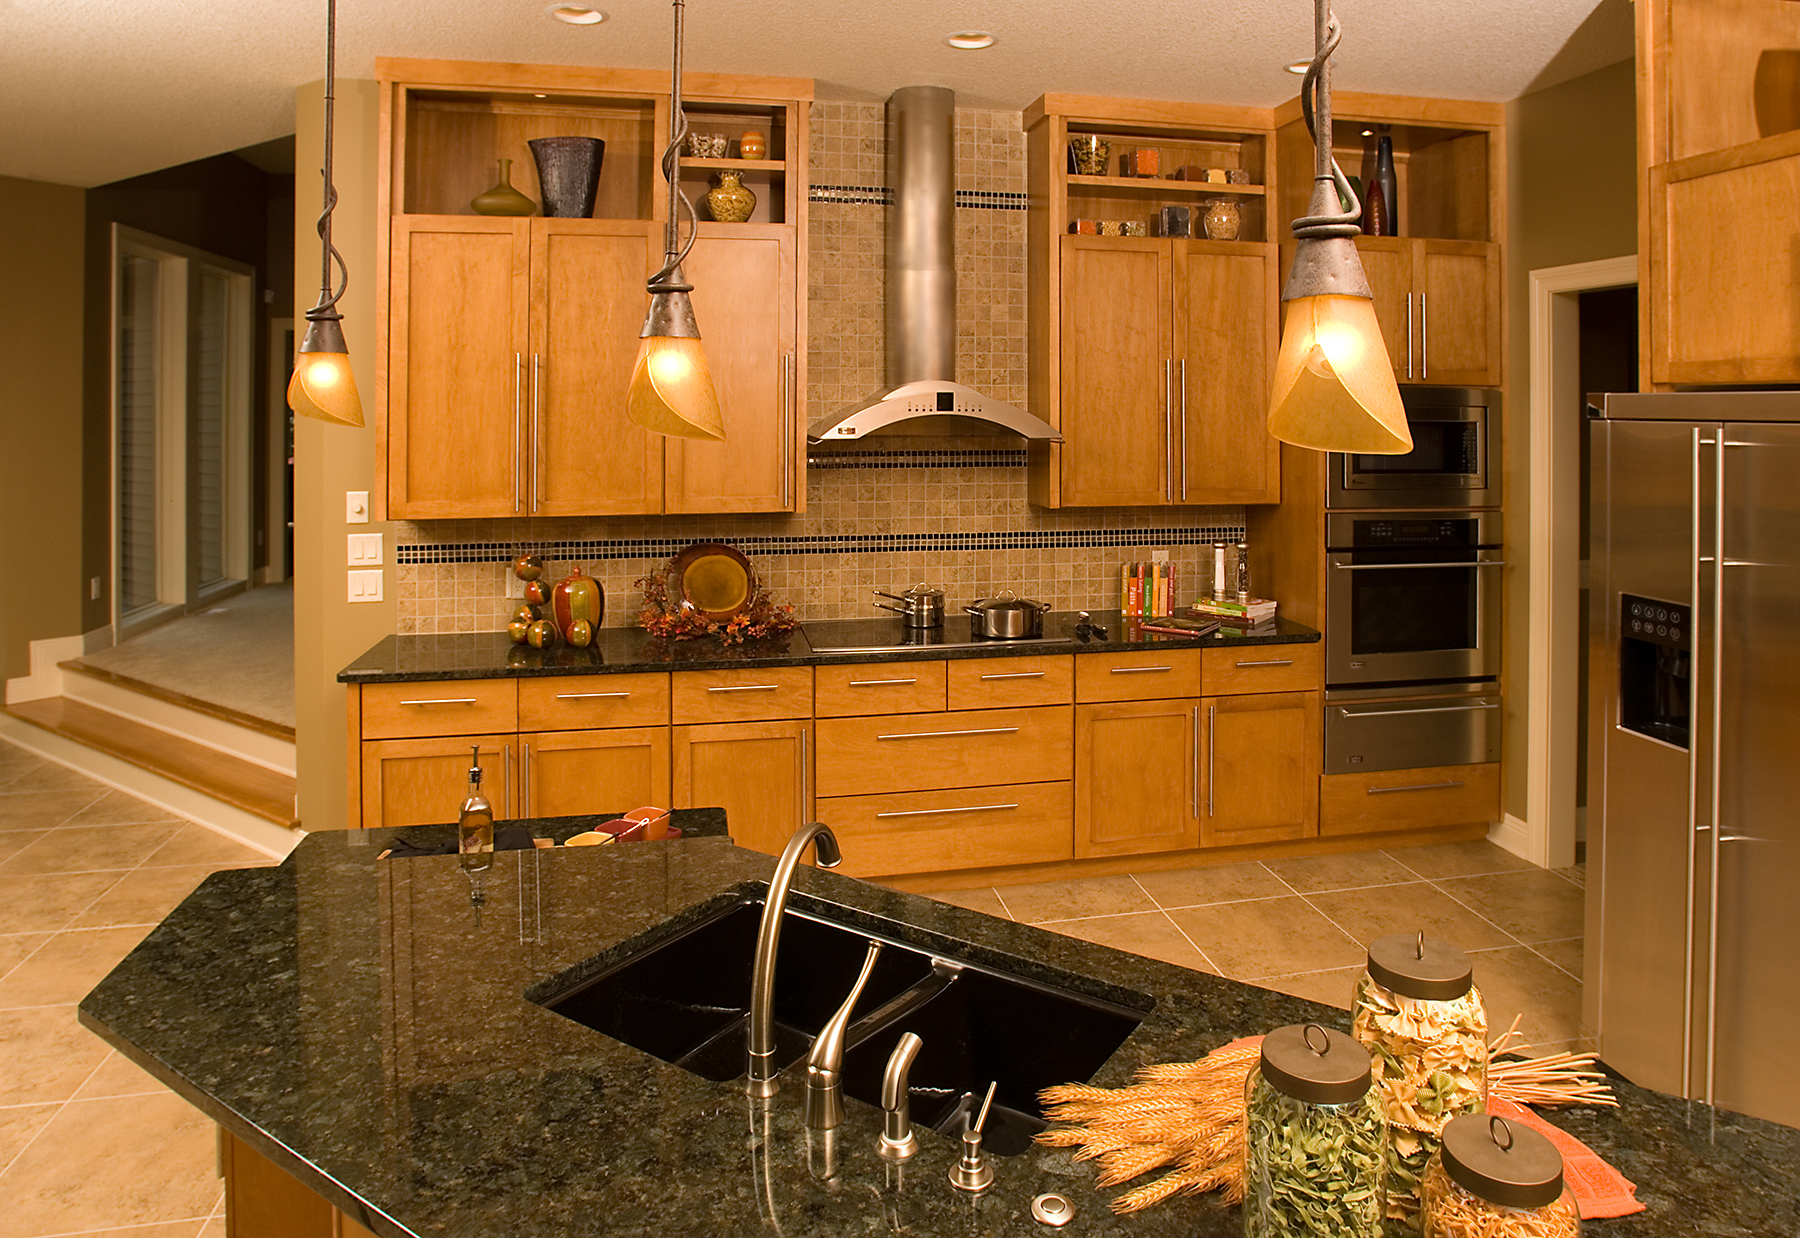 kitchen cabinets cnc cabinetry kitchen image mount vernon new york rh kitchenimage com kitchen cabinets new york kitchen cabinets nyc sale